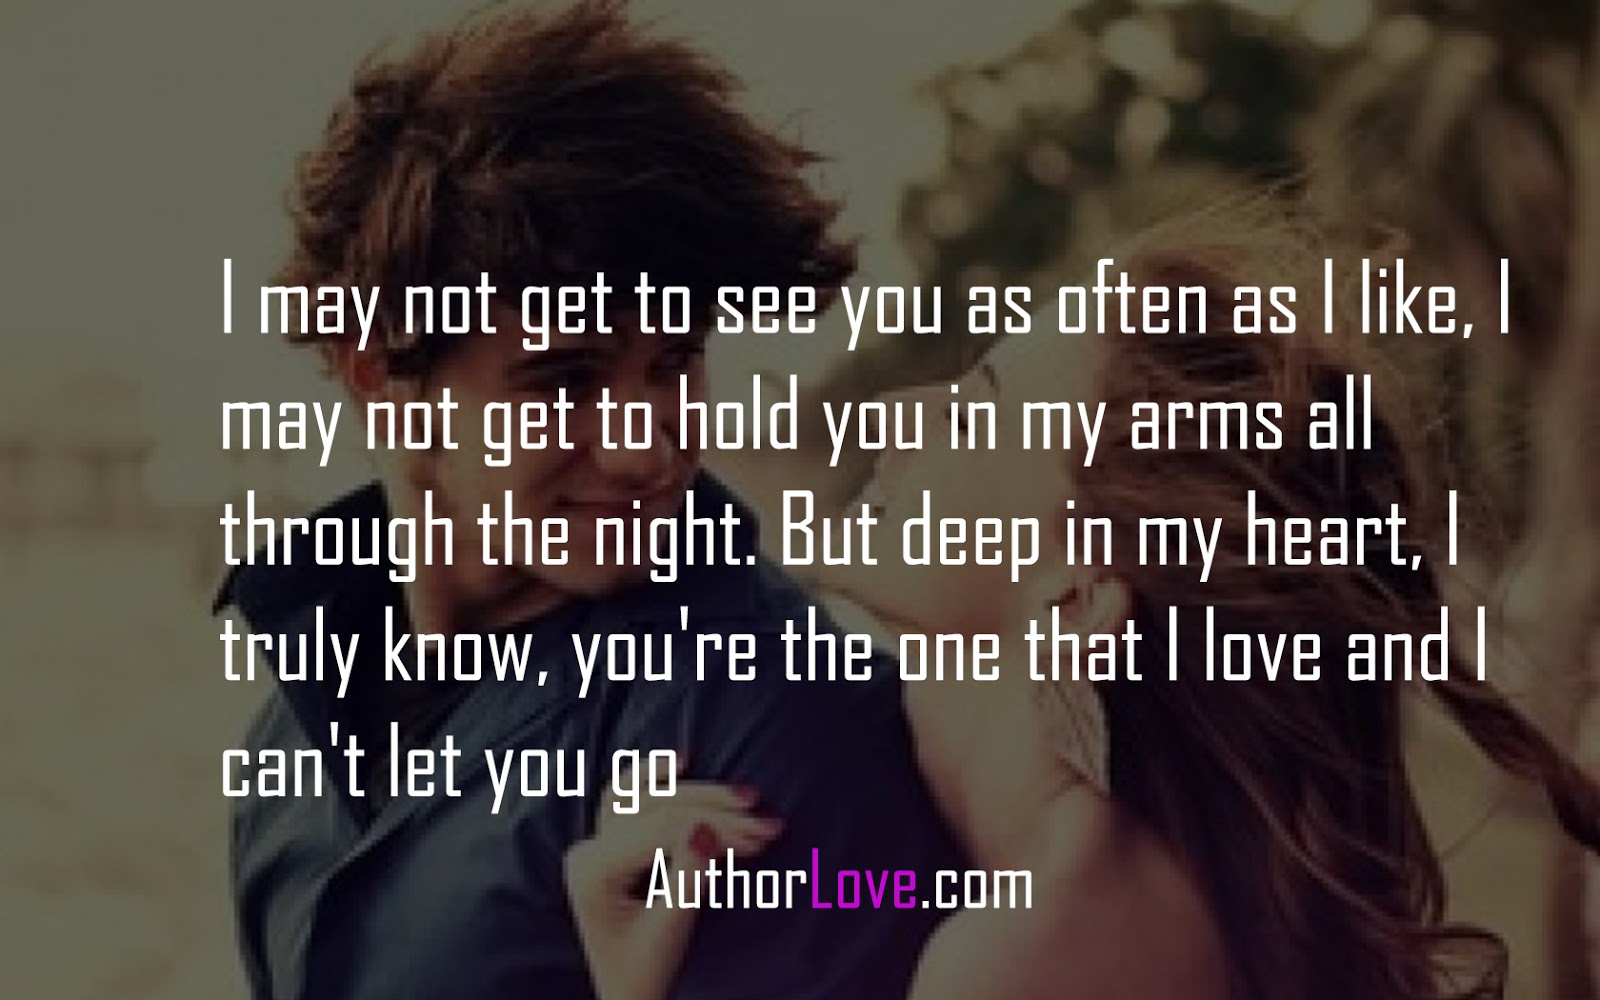 I May Not Get To See You As Often As I Like Love Quotes Author Love